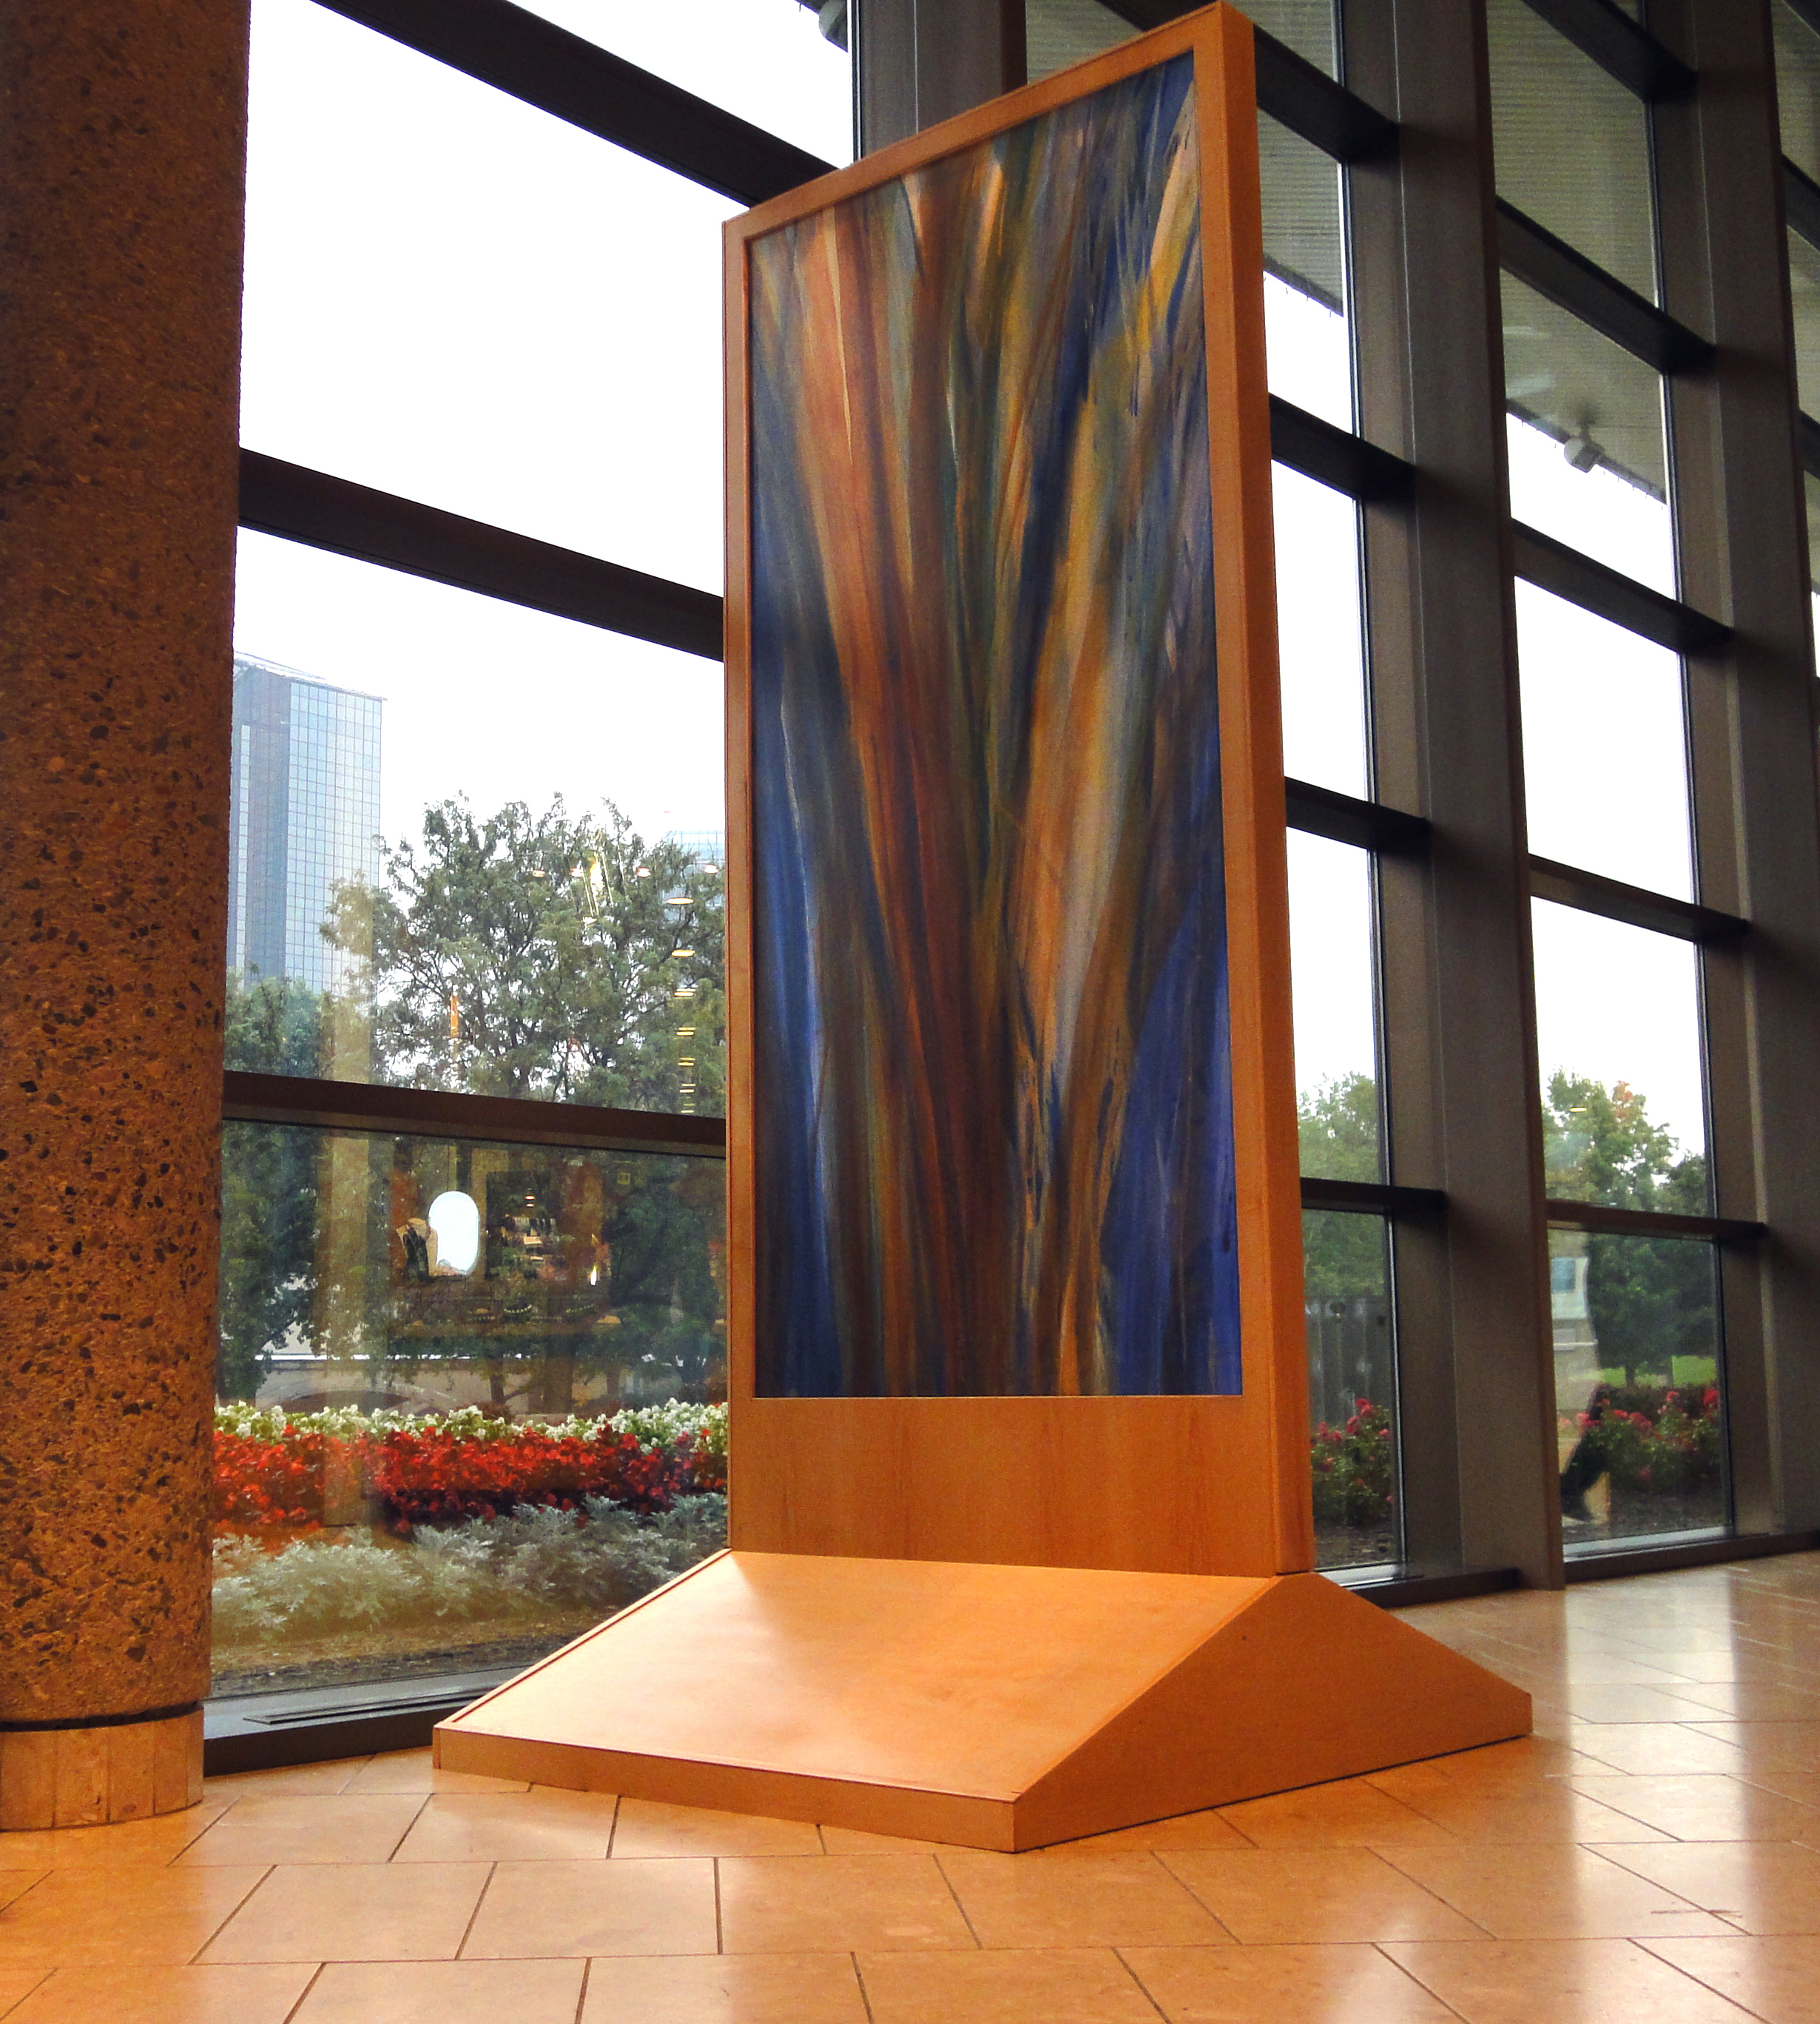 Gerald R. Ford Presidential Library & Museum